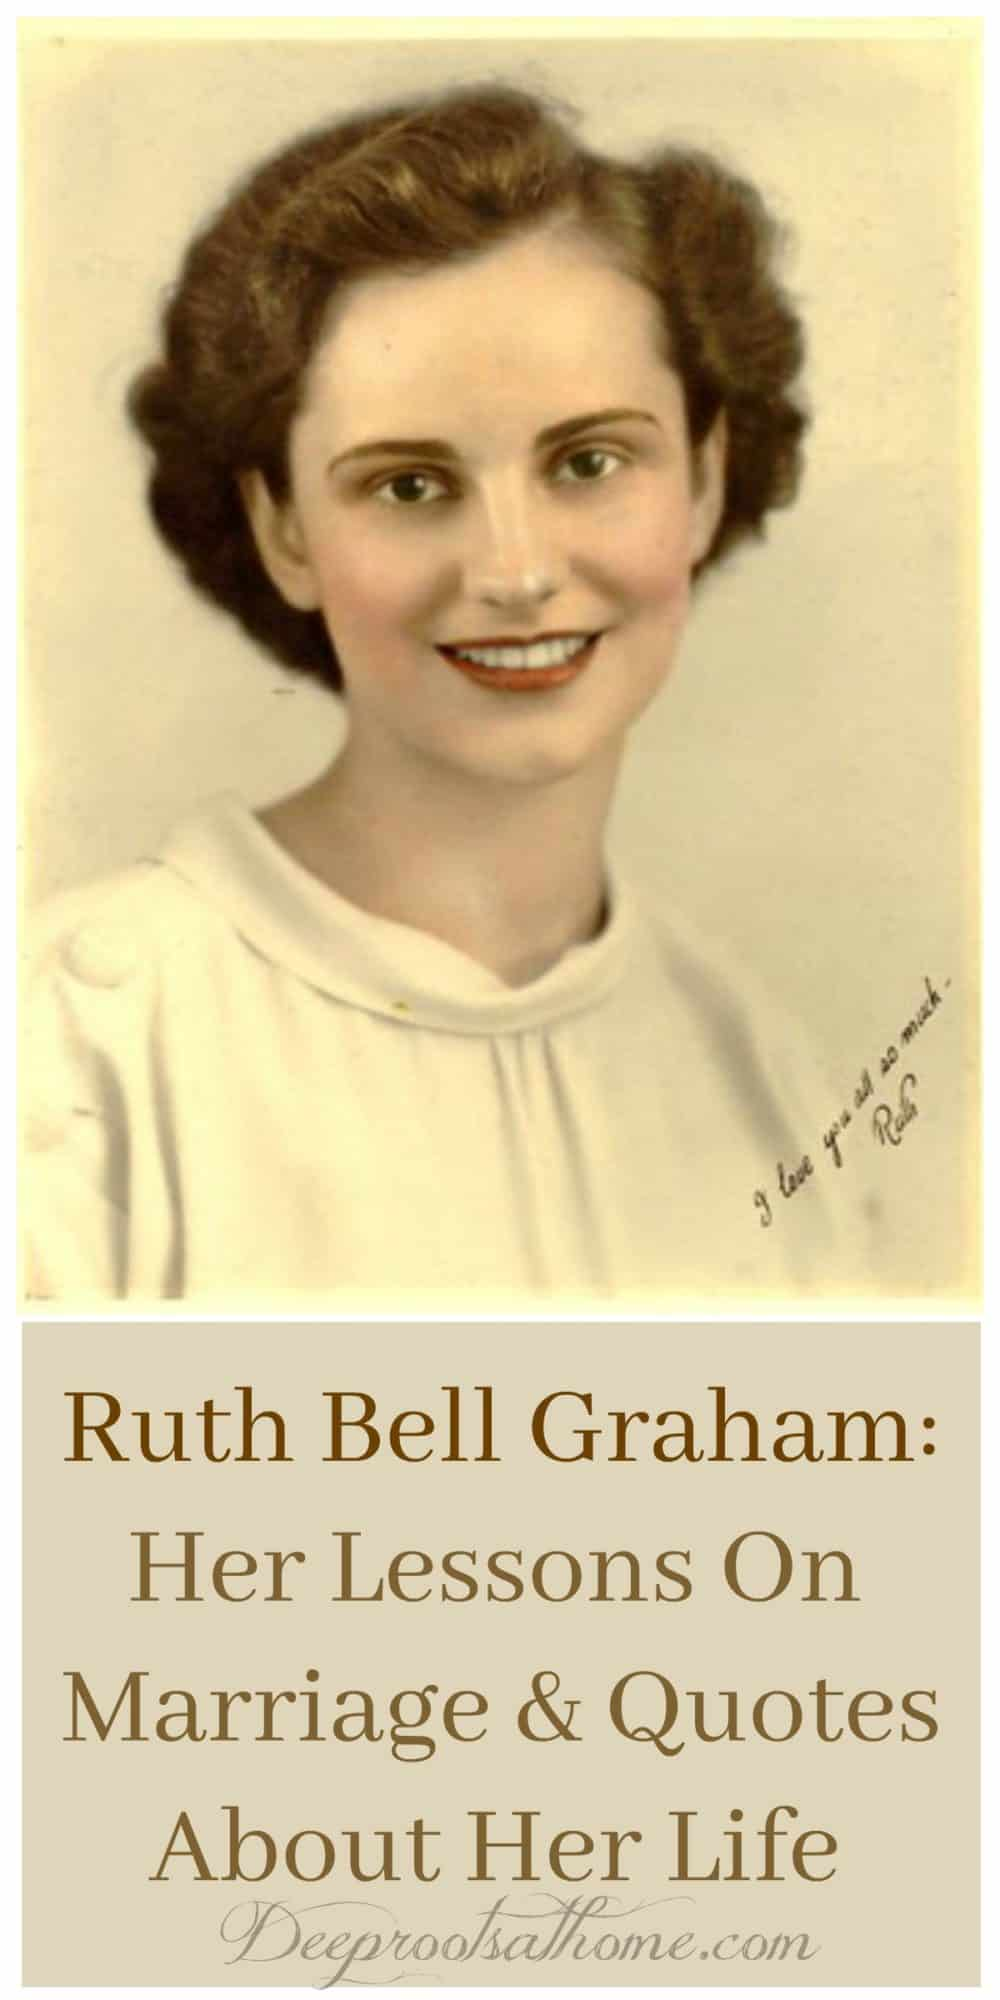 Ruth Bell Graham: Her Lessons On Marriage & Quotes About Her Life, old photo